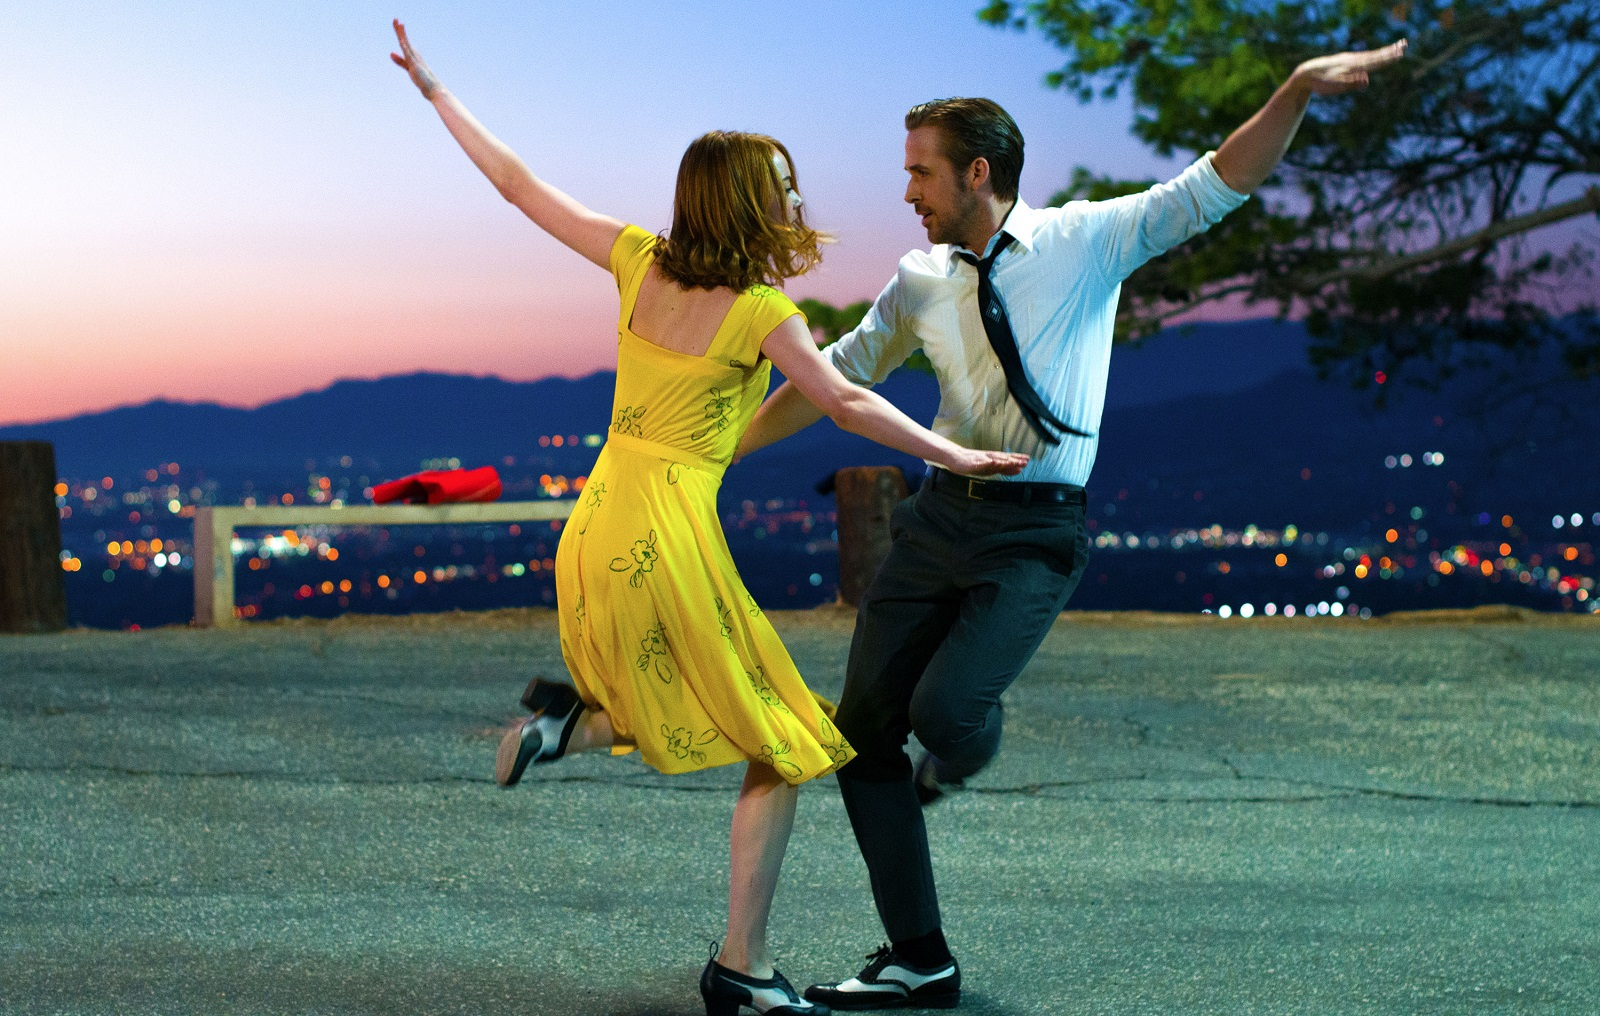 Jeff Simon sees Emma Stone, left, as a viable Oscar winner, but he does not think Gosling should pull in the hardware. (Lionsgate)